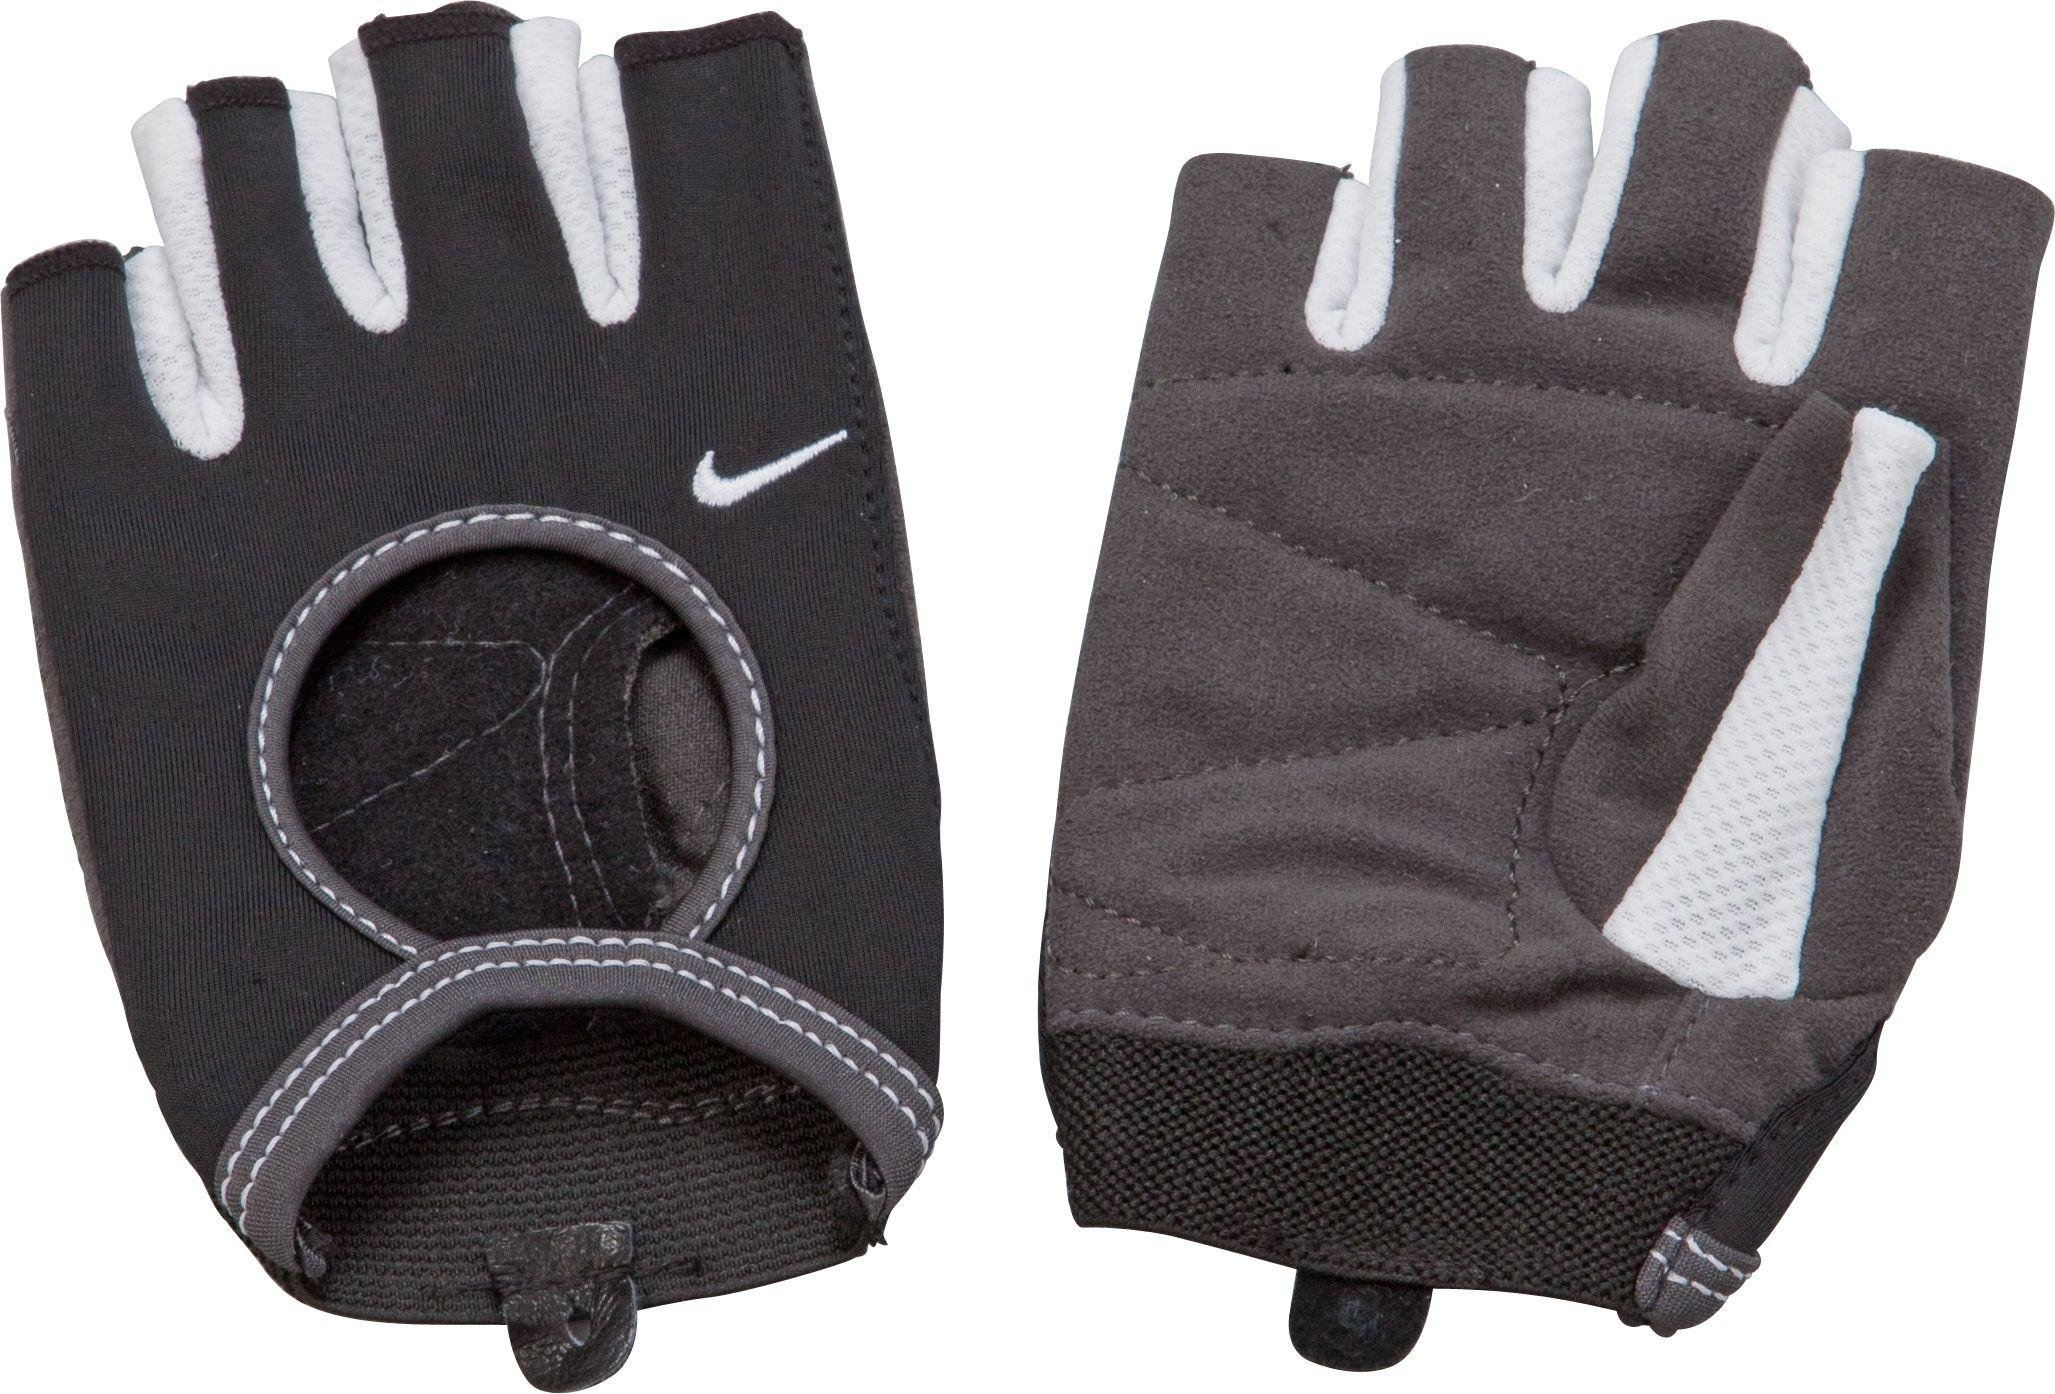 Nike - Essential Women's Fitness Gloves - Medium lowest price